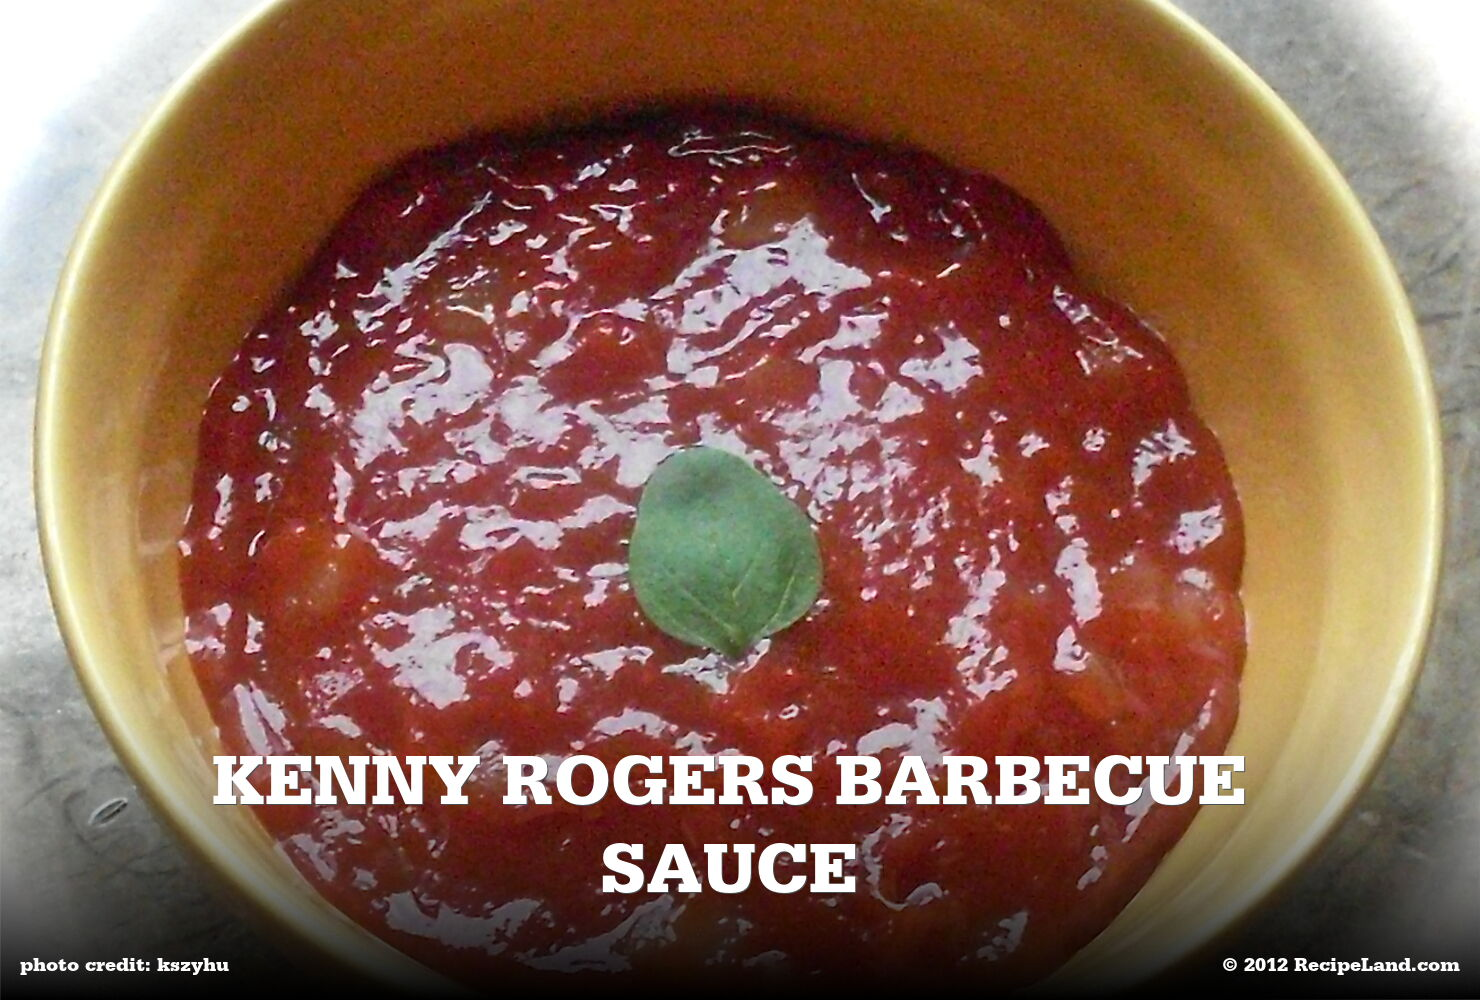 Kenny Rogers Barbecue Sauce